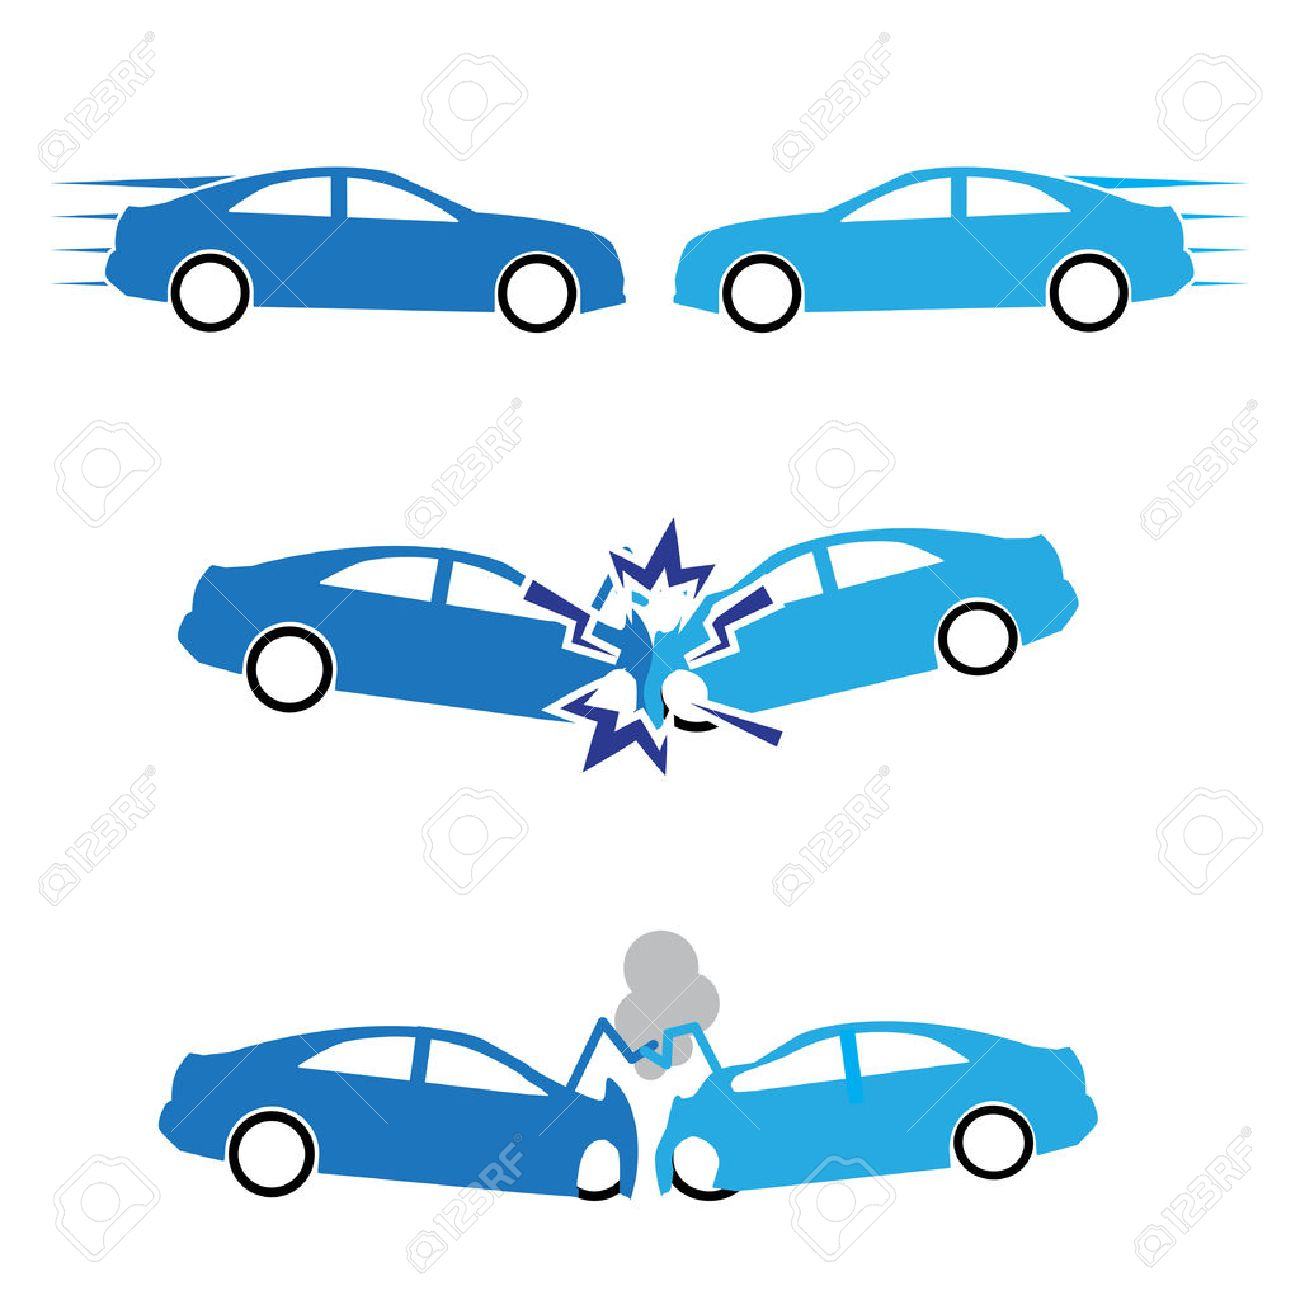 9,943 Car Accident Cliparts, Stock Vector And Royalty Free Car ...